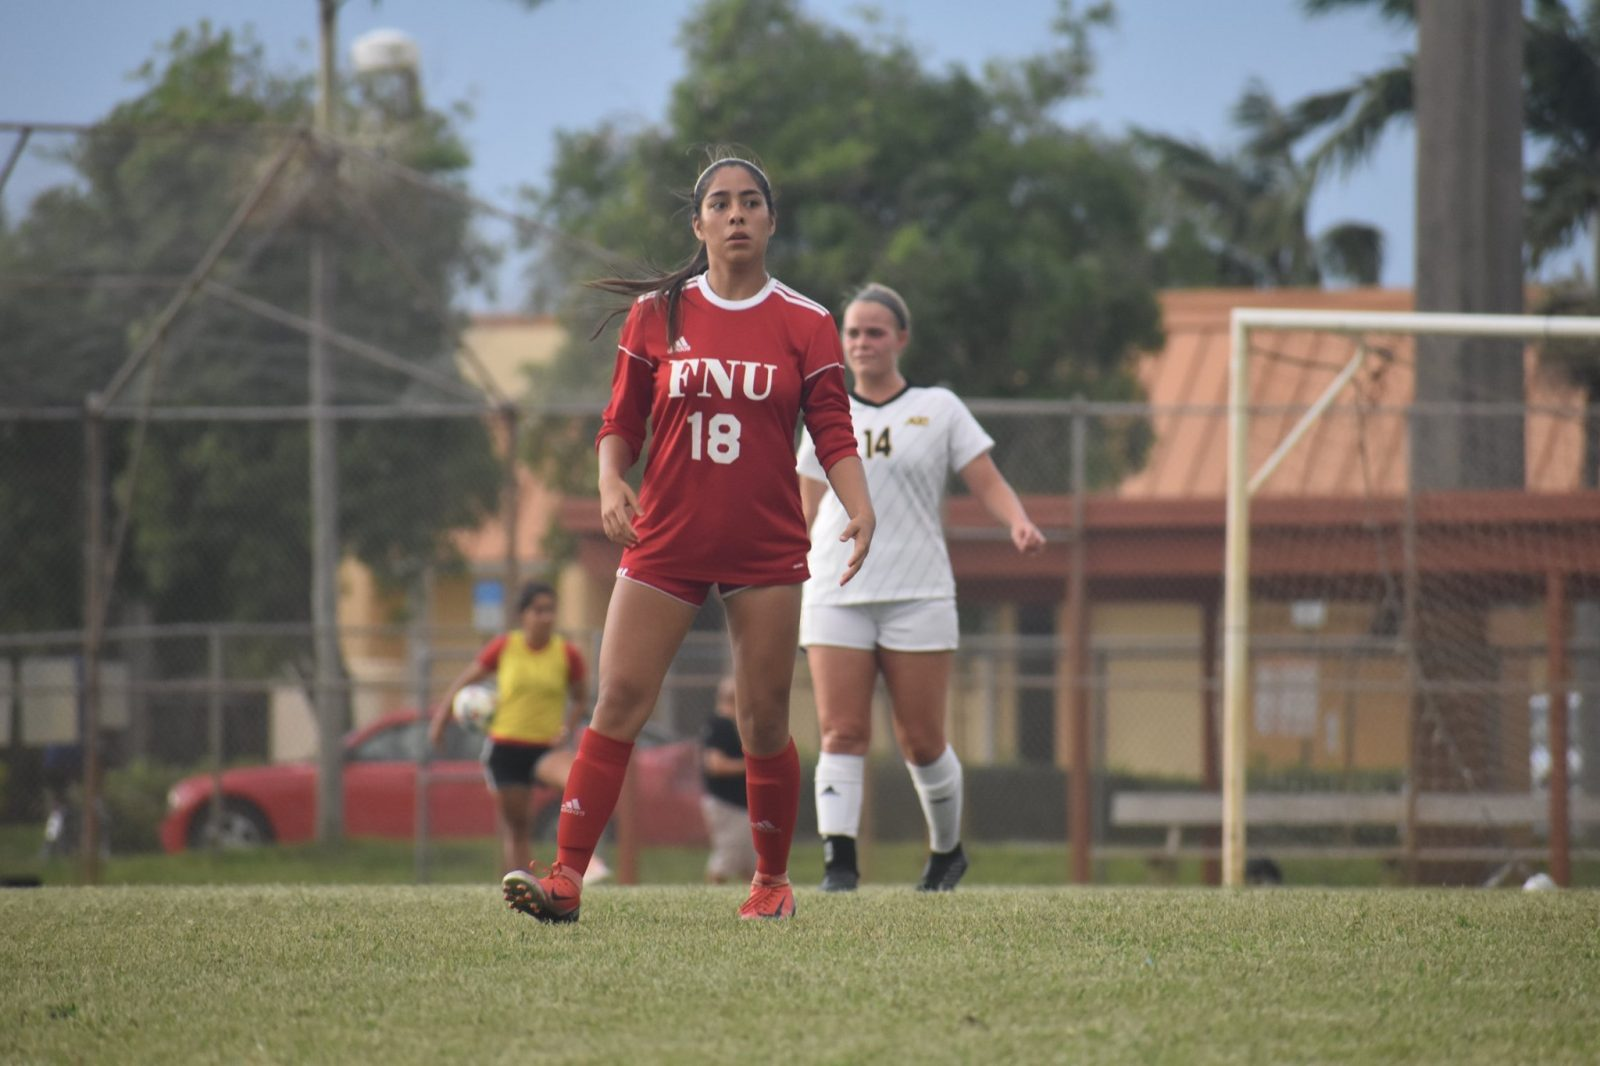 FNU Soccer player Walking on the field